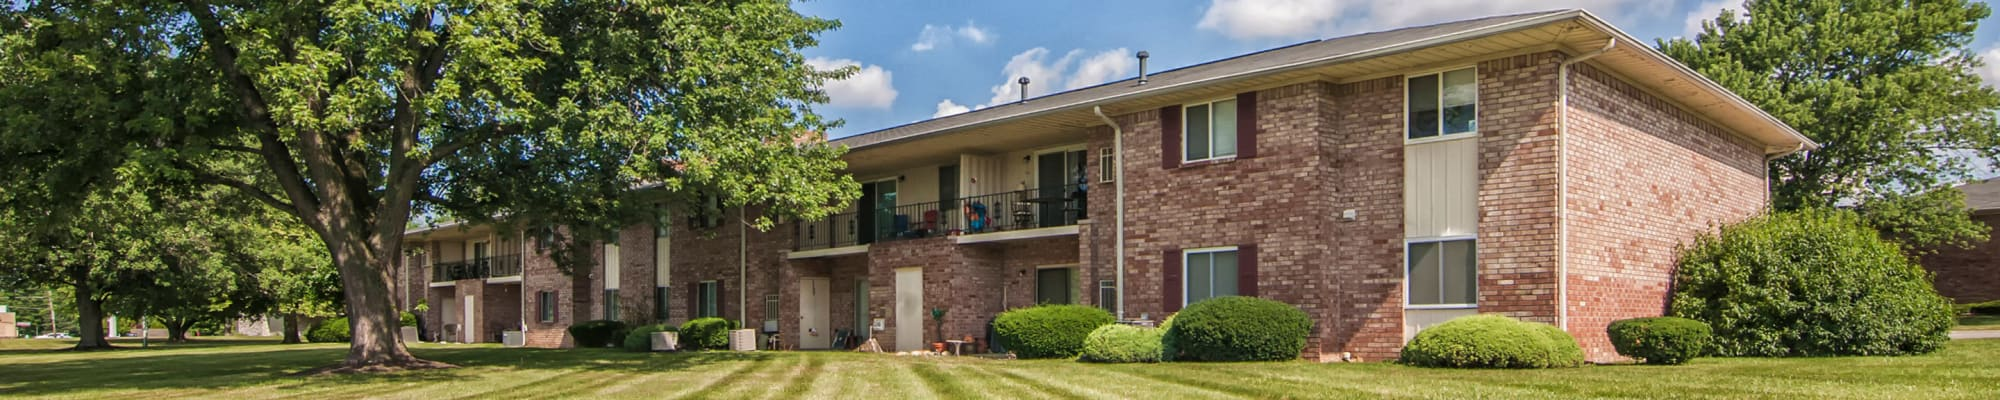 Privacy policy for Beech Meadow in Beech Grove, Indiana